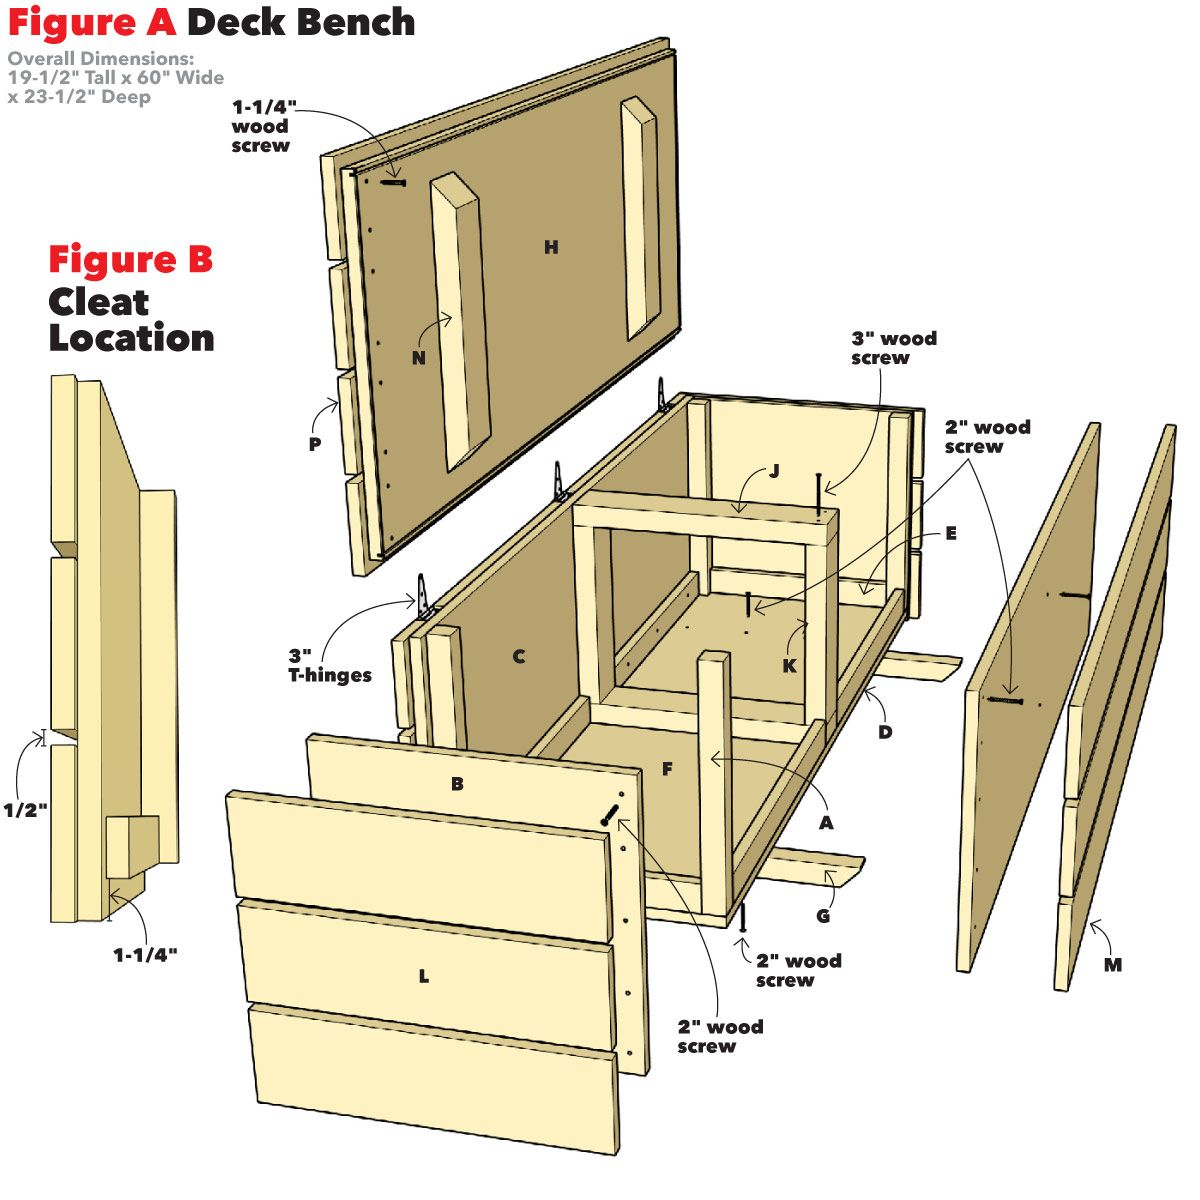 How To Build An Outdoor Storage Bench In 2020 Outdoor Storage Bench Patio Storage Bench Patio Storage